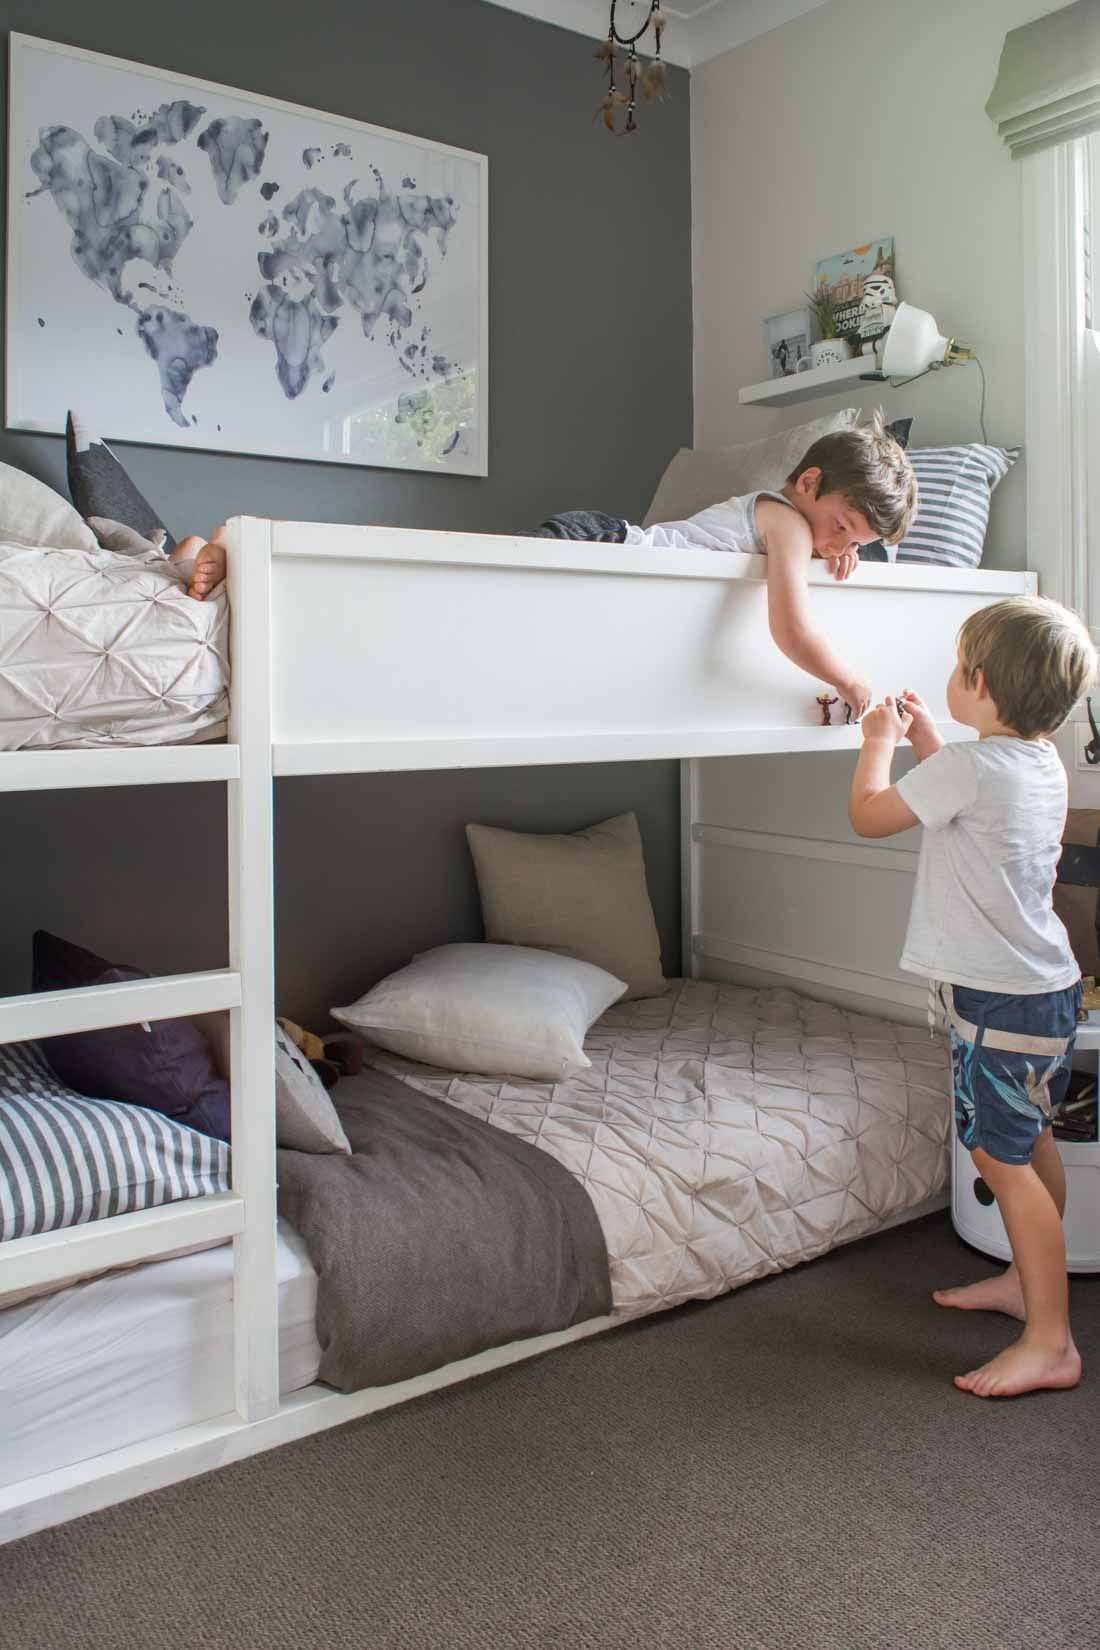 What Do You Think About This Bunkbed For The Boys? Sharing Some Thoughts On  This Room Designed For My Two Youngest, And How It Came Together With The  Editor ... Gallery